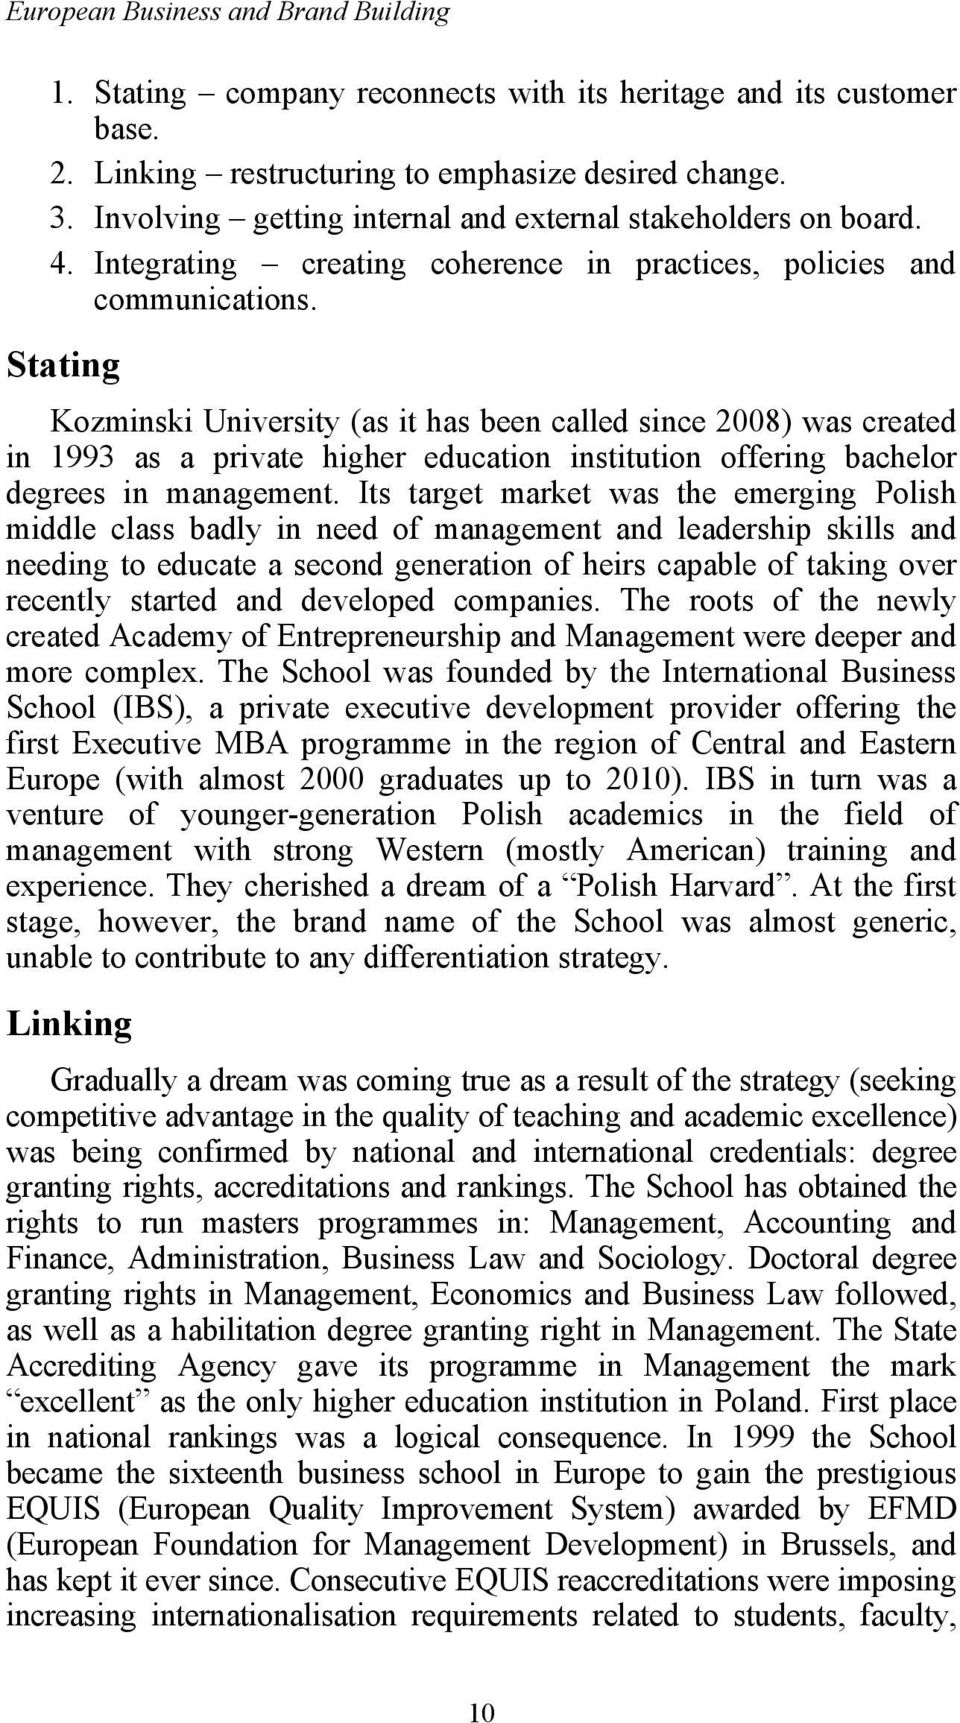 Stating Kozminski University (as it has been called since 2008) was created in 1993 as a private higher education institution offering bachelor degrees in management.